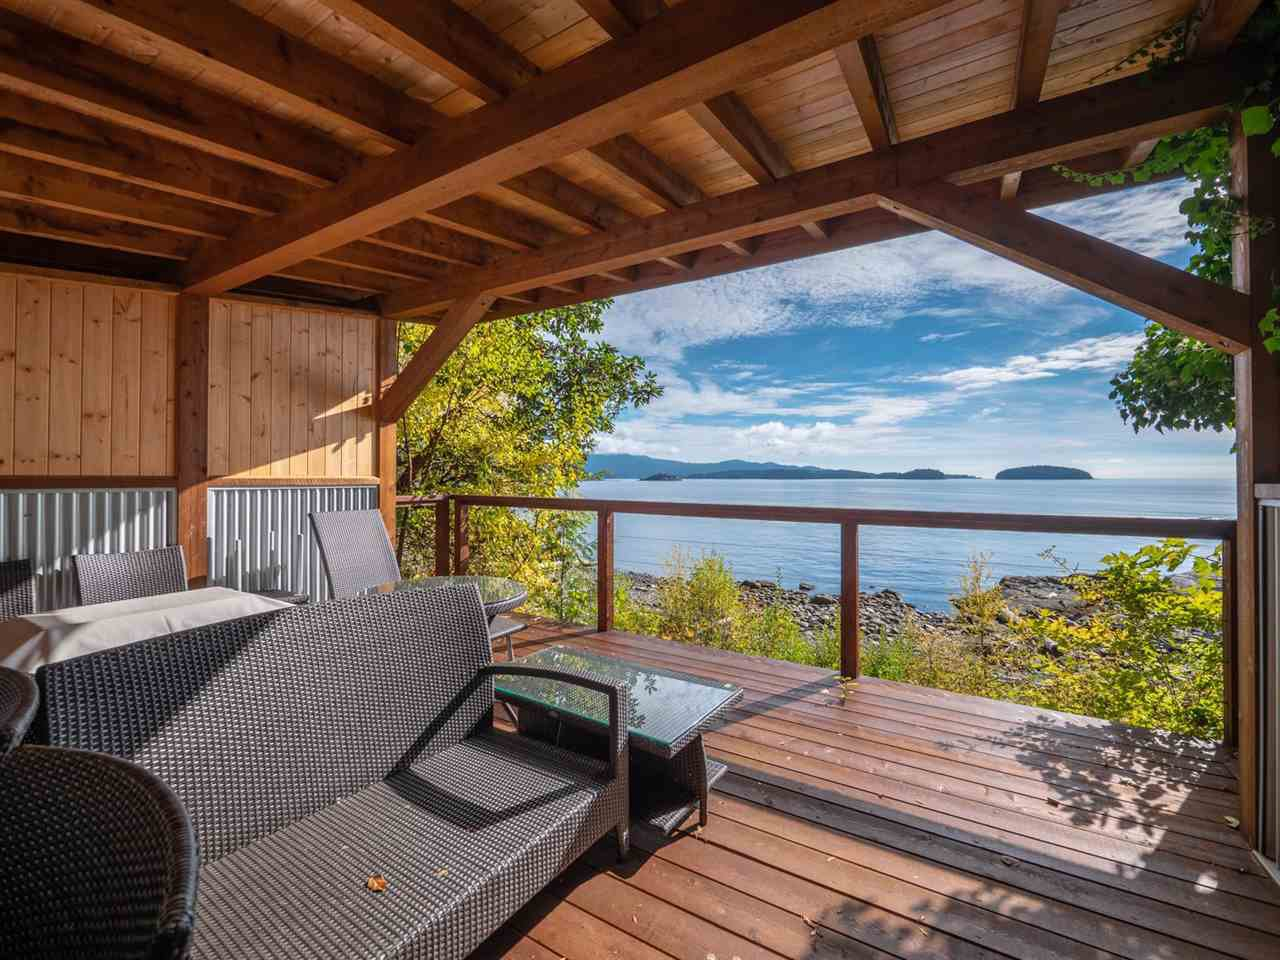 Photo 3: Photos: 877 GOWER POINT Road in Gibsons: Gibsons & Area House for sale (Sunshine Coast)  : MLS®# R2419918